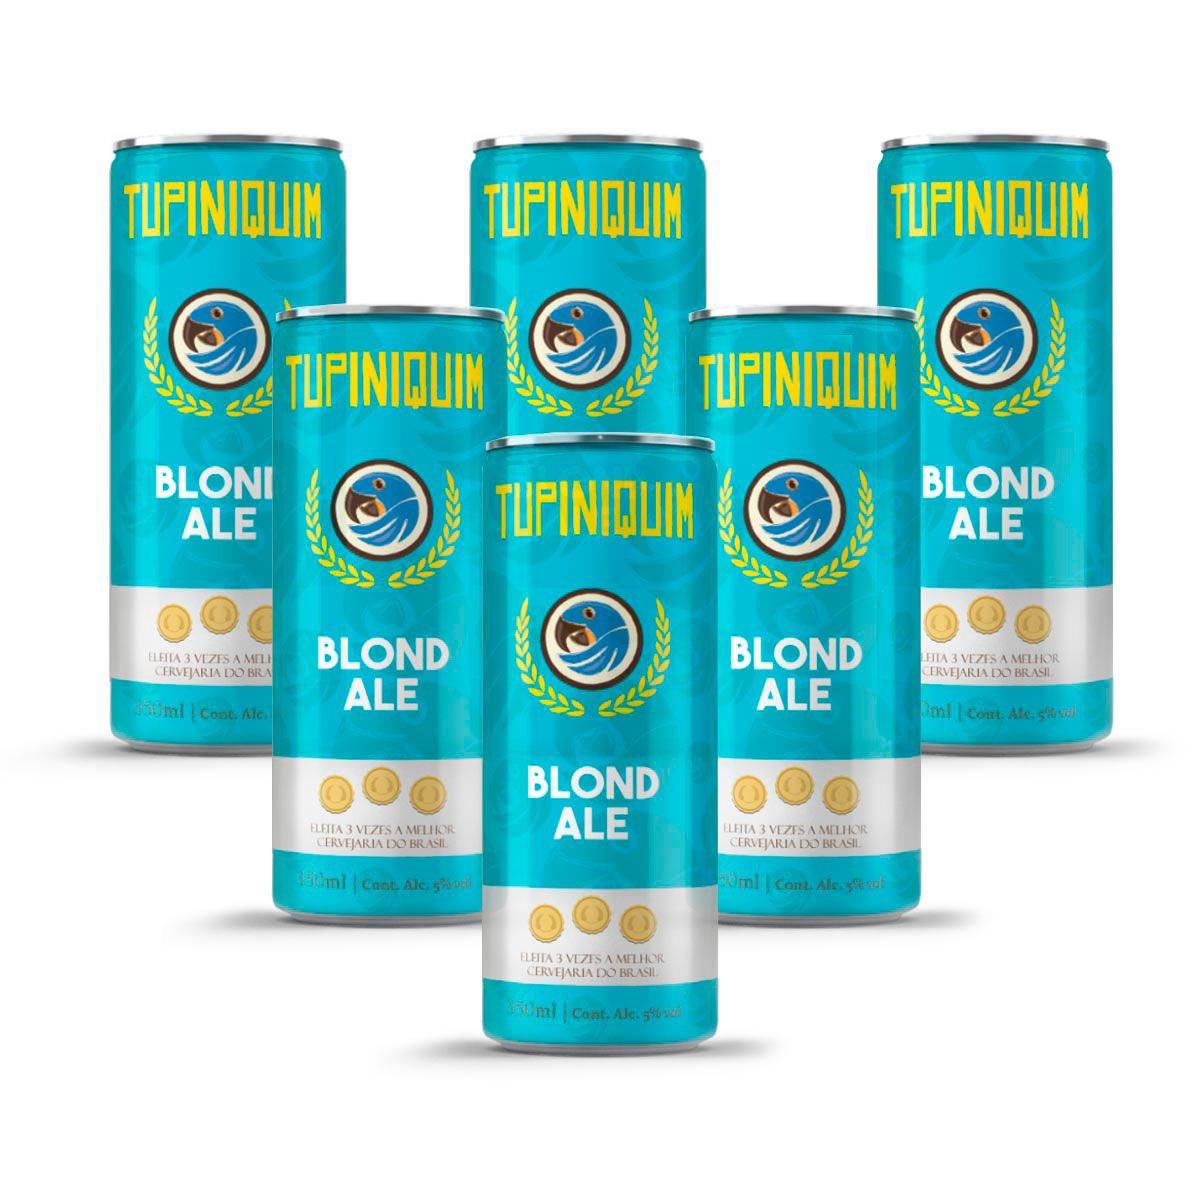 Pack Tupiniquim Blond Ale 6 cervejas 350ml